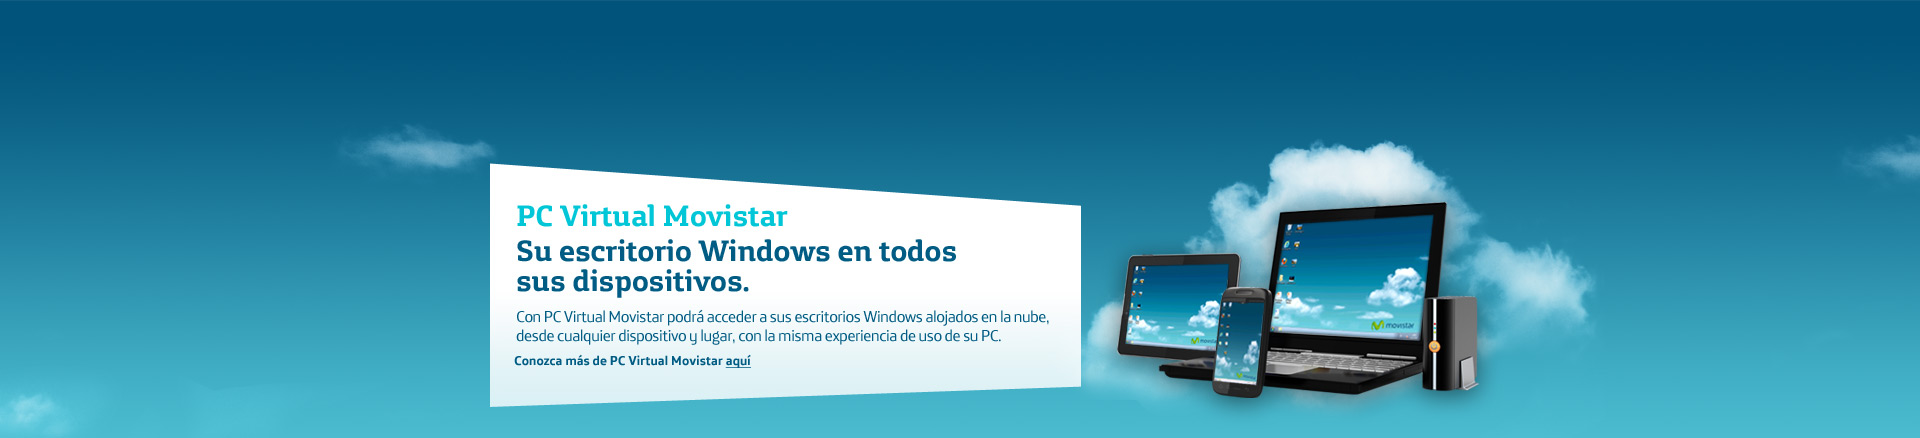 PC Virtual Movistar. Su escritorio Windows en todos sus dispositivos.